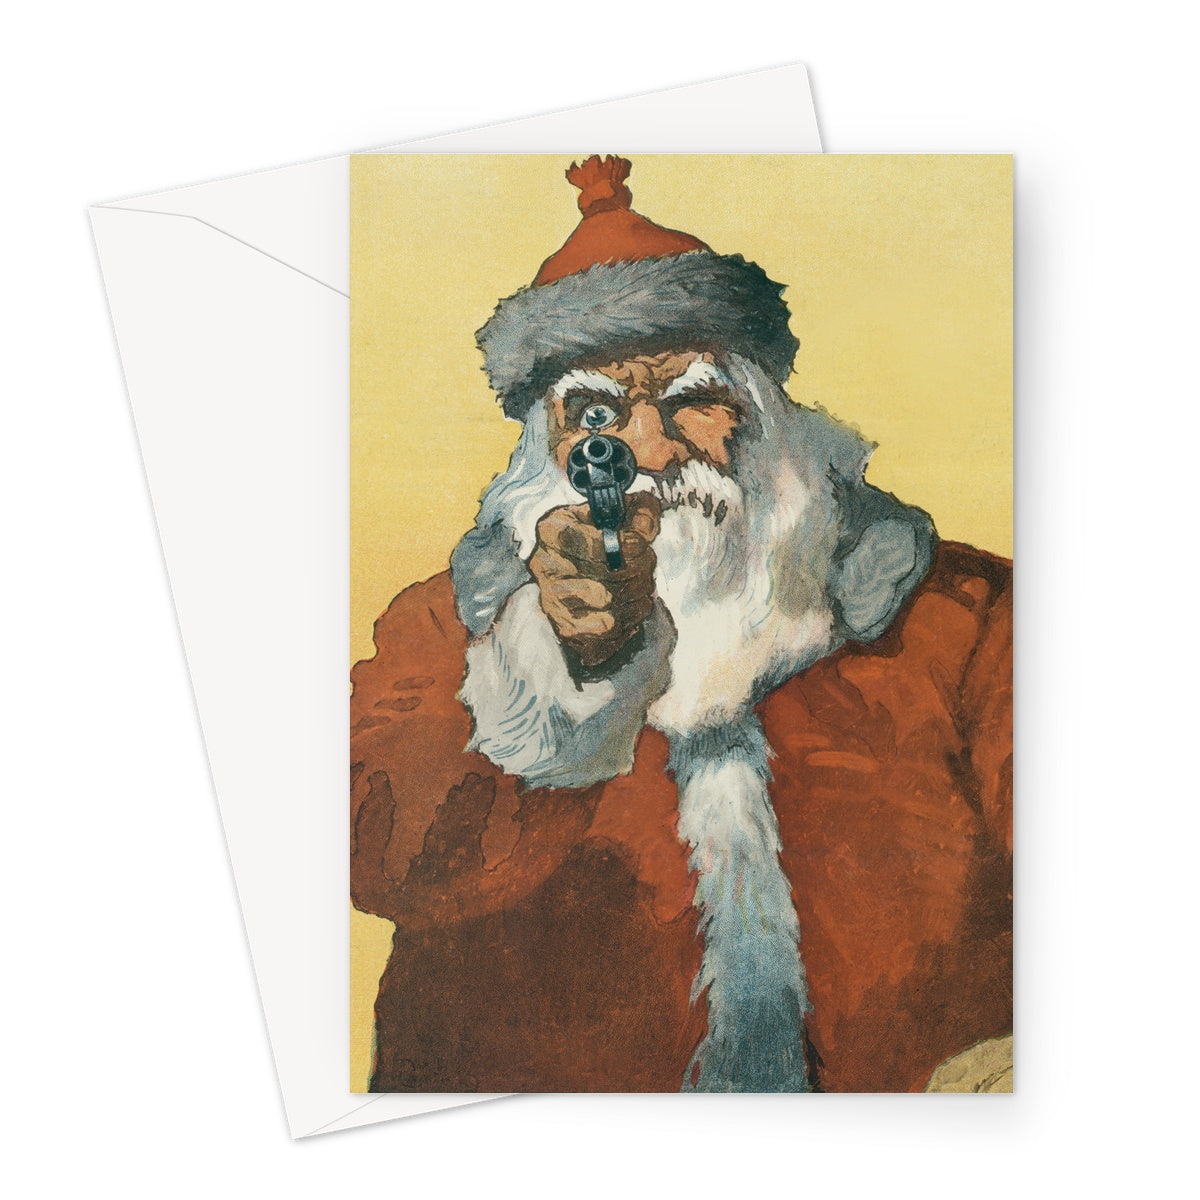 Santa Claus With a Handgun by Will Crawford - 1912, Greeting Card